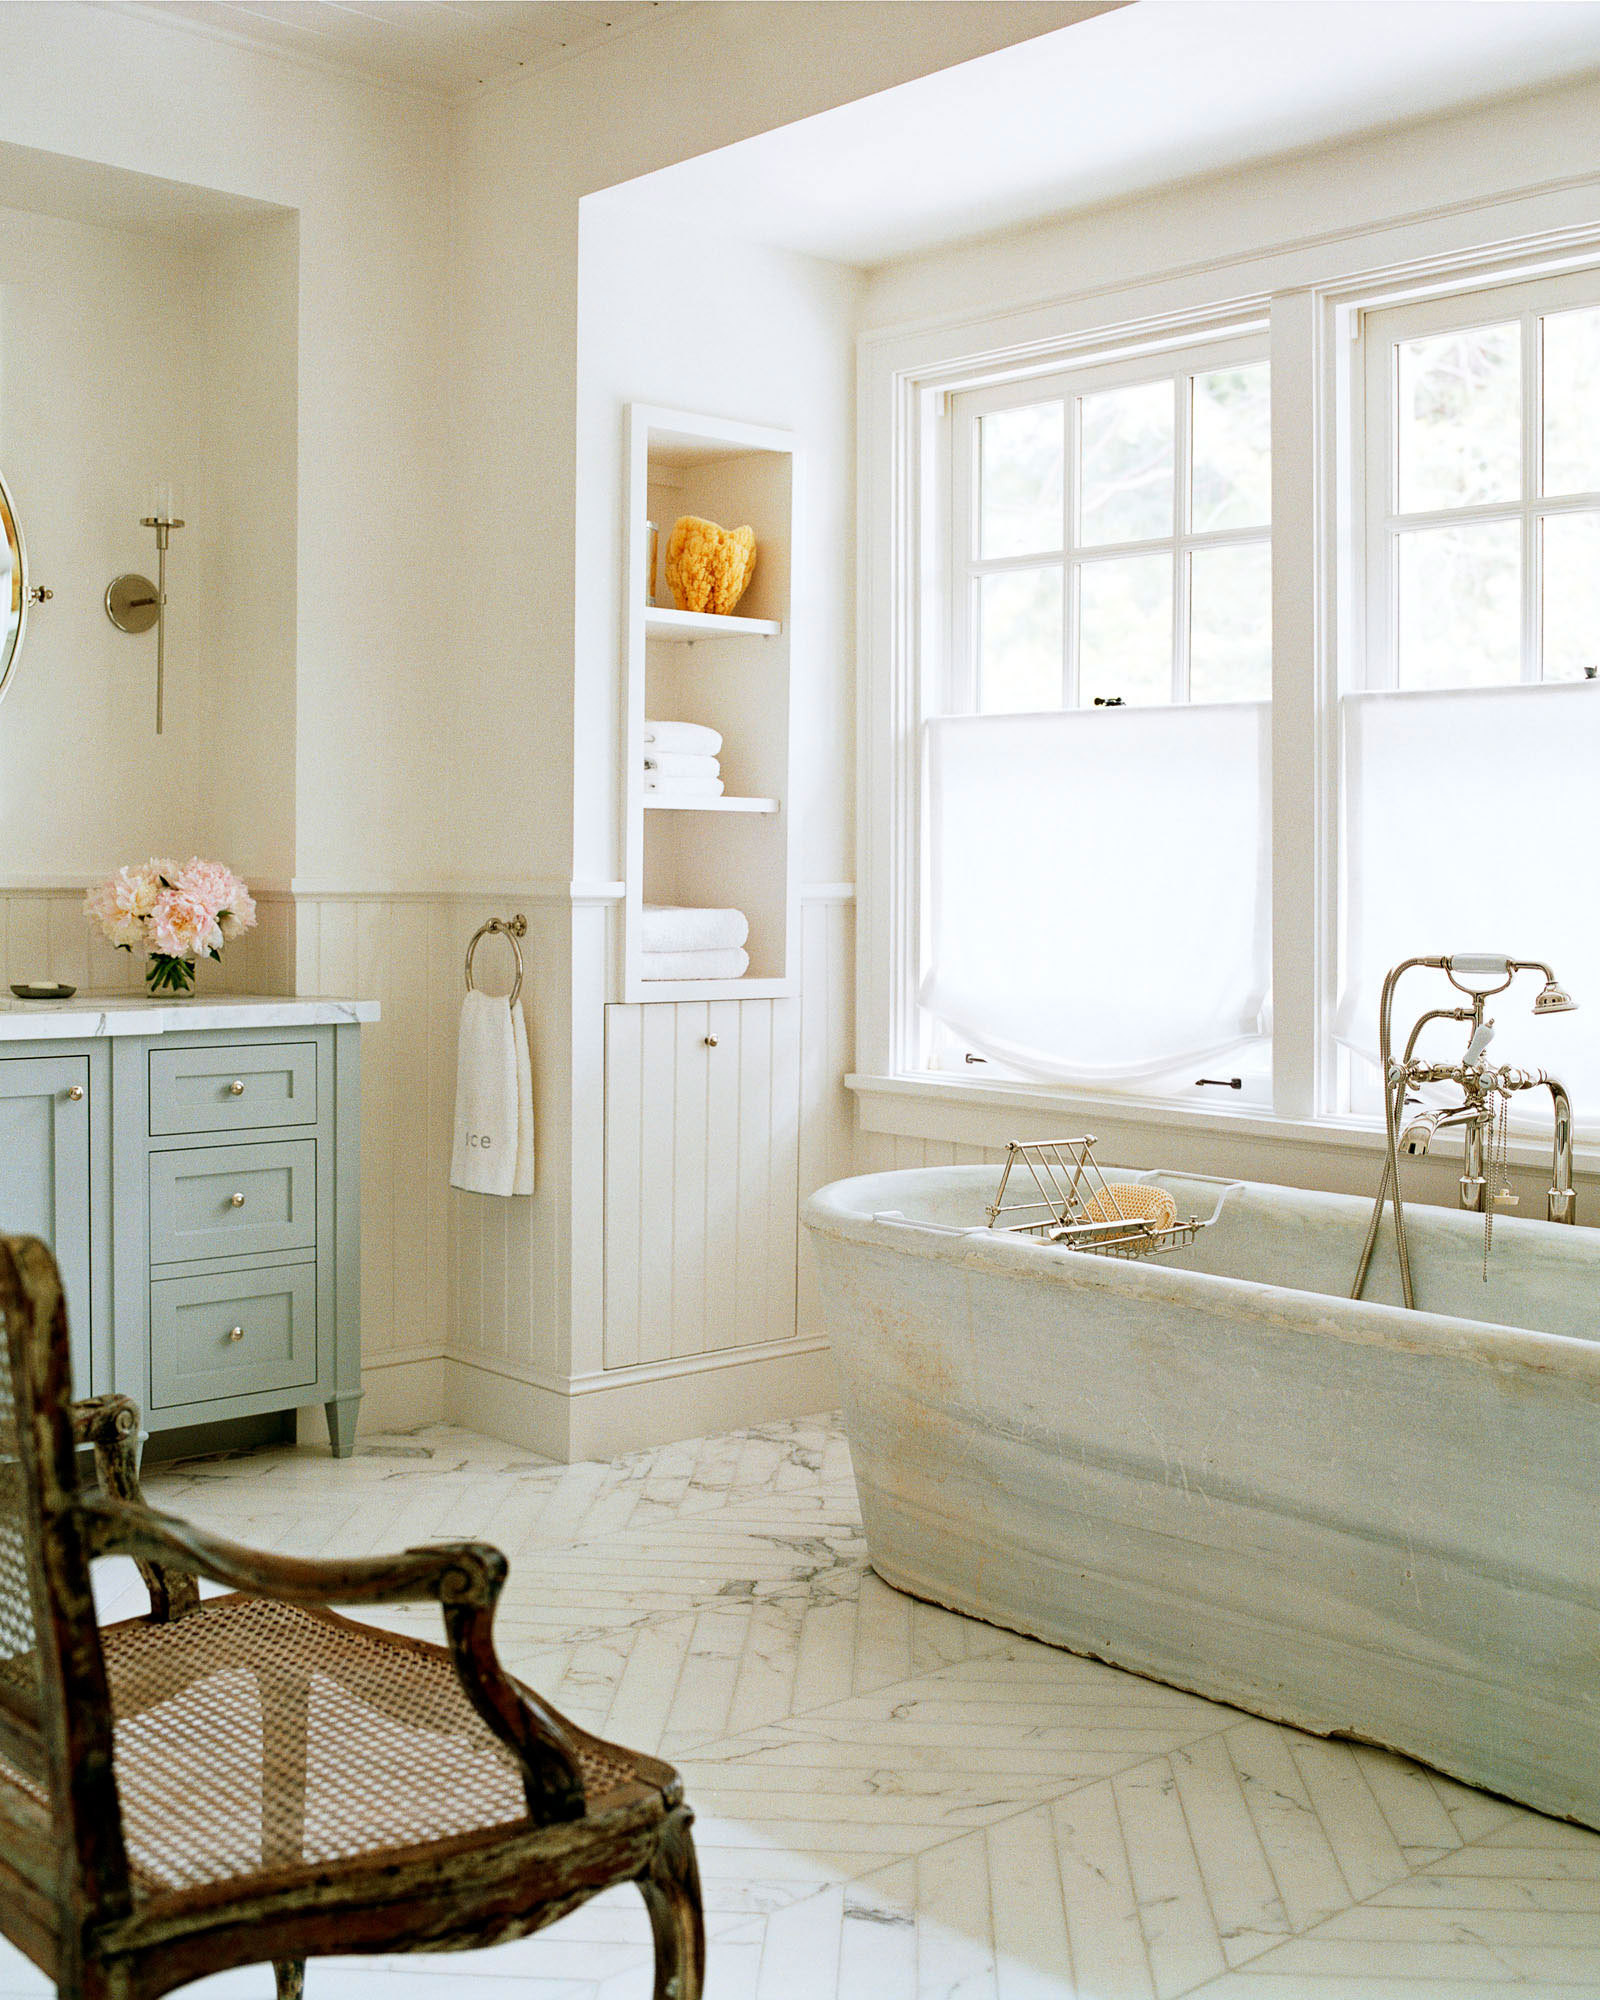 An antique marble tub sourced from a crumbling French château takes pride of place in the master bathroom.